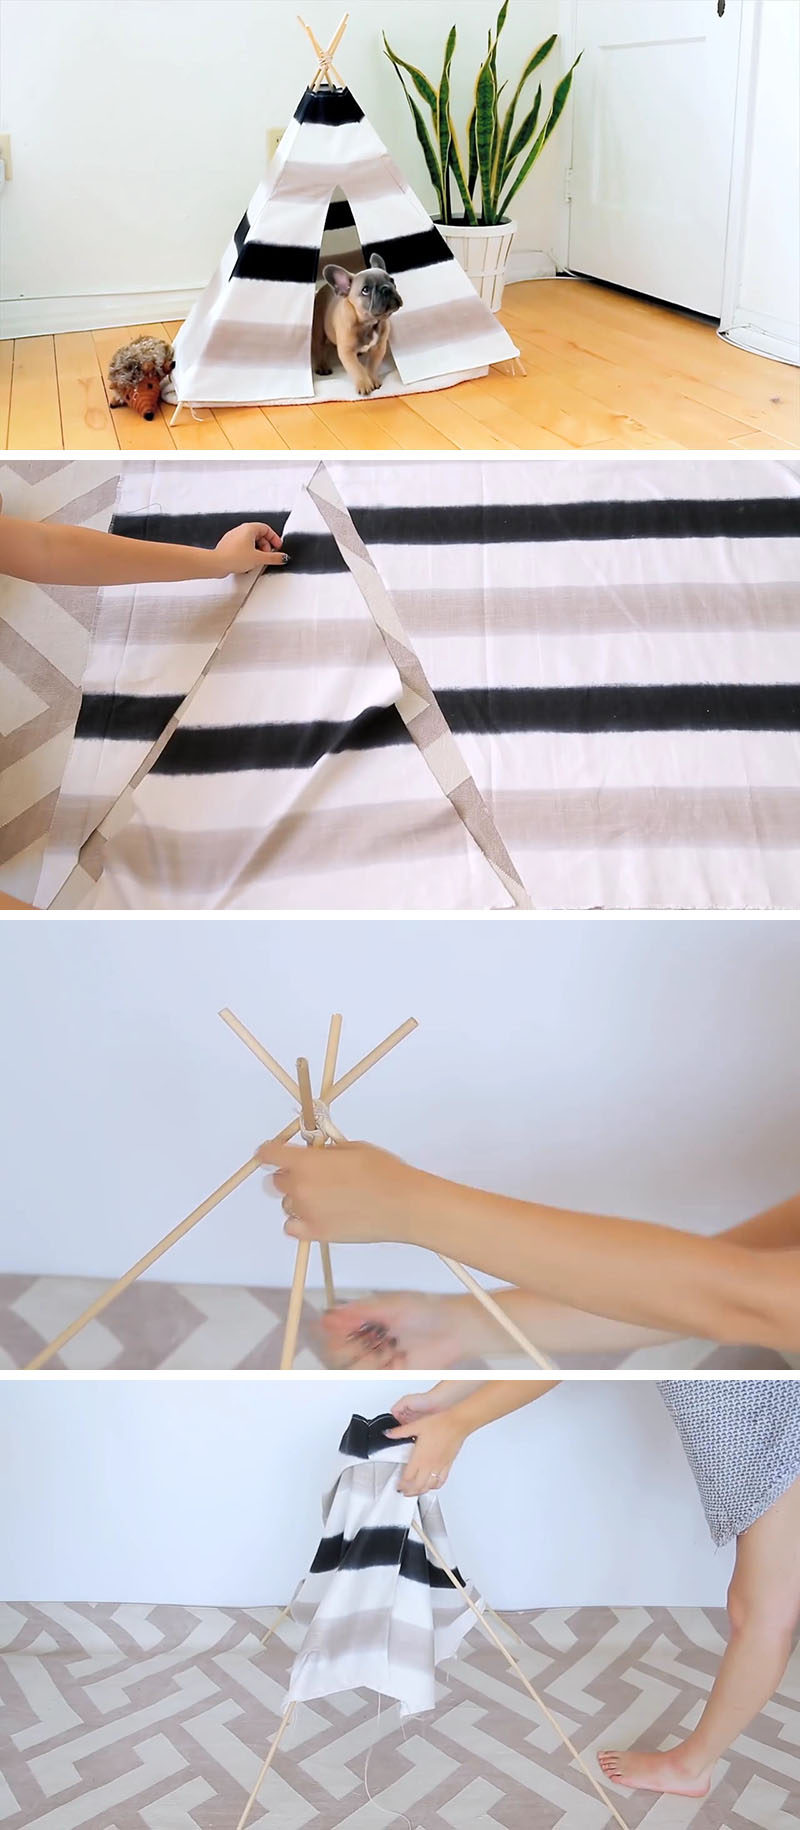 Here's a fun and inexpensive DIY Dog Tent that won't look out of place in your modern interior. Using very few materials like wood dowels and canvas, you can create your own modern dog bed (or cat bed) for your furry friend.